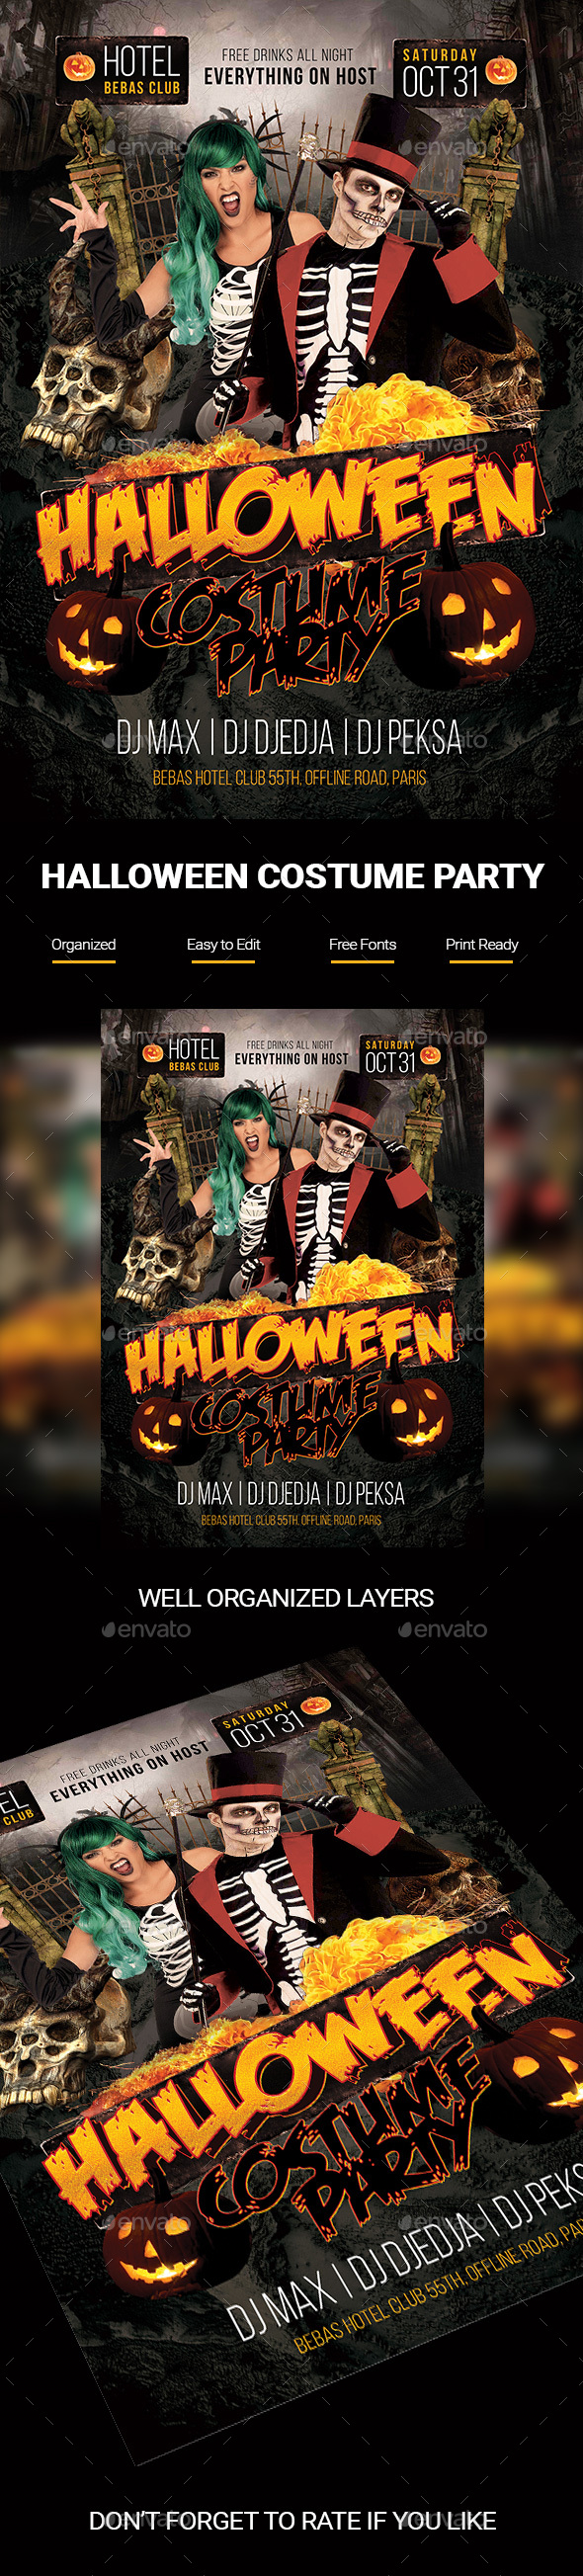 Halloween Costume Party Poster - Holidays Events